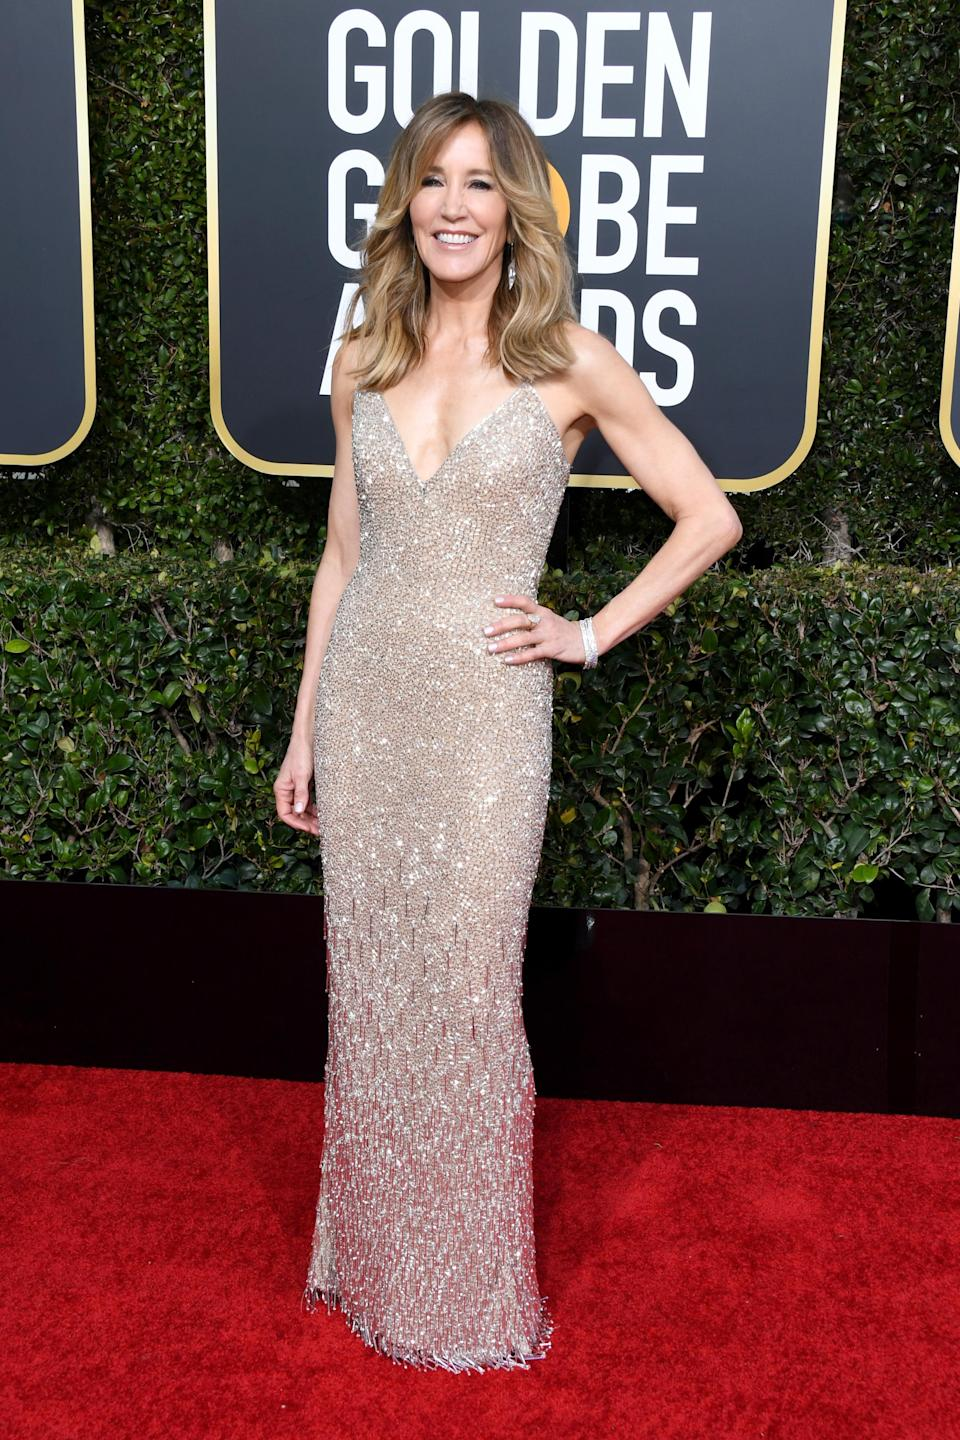 <p>A golden goddess at 56, Felicity Huffman looked gorgeous on the red carpet in a gown by designer Laura Basci. <br>Image via Getty Images. </p>